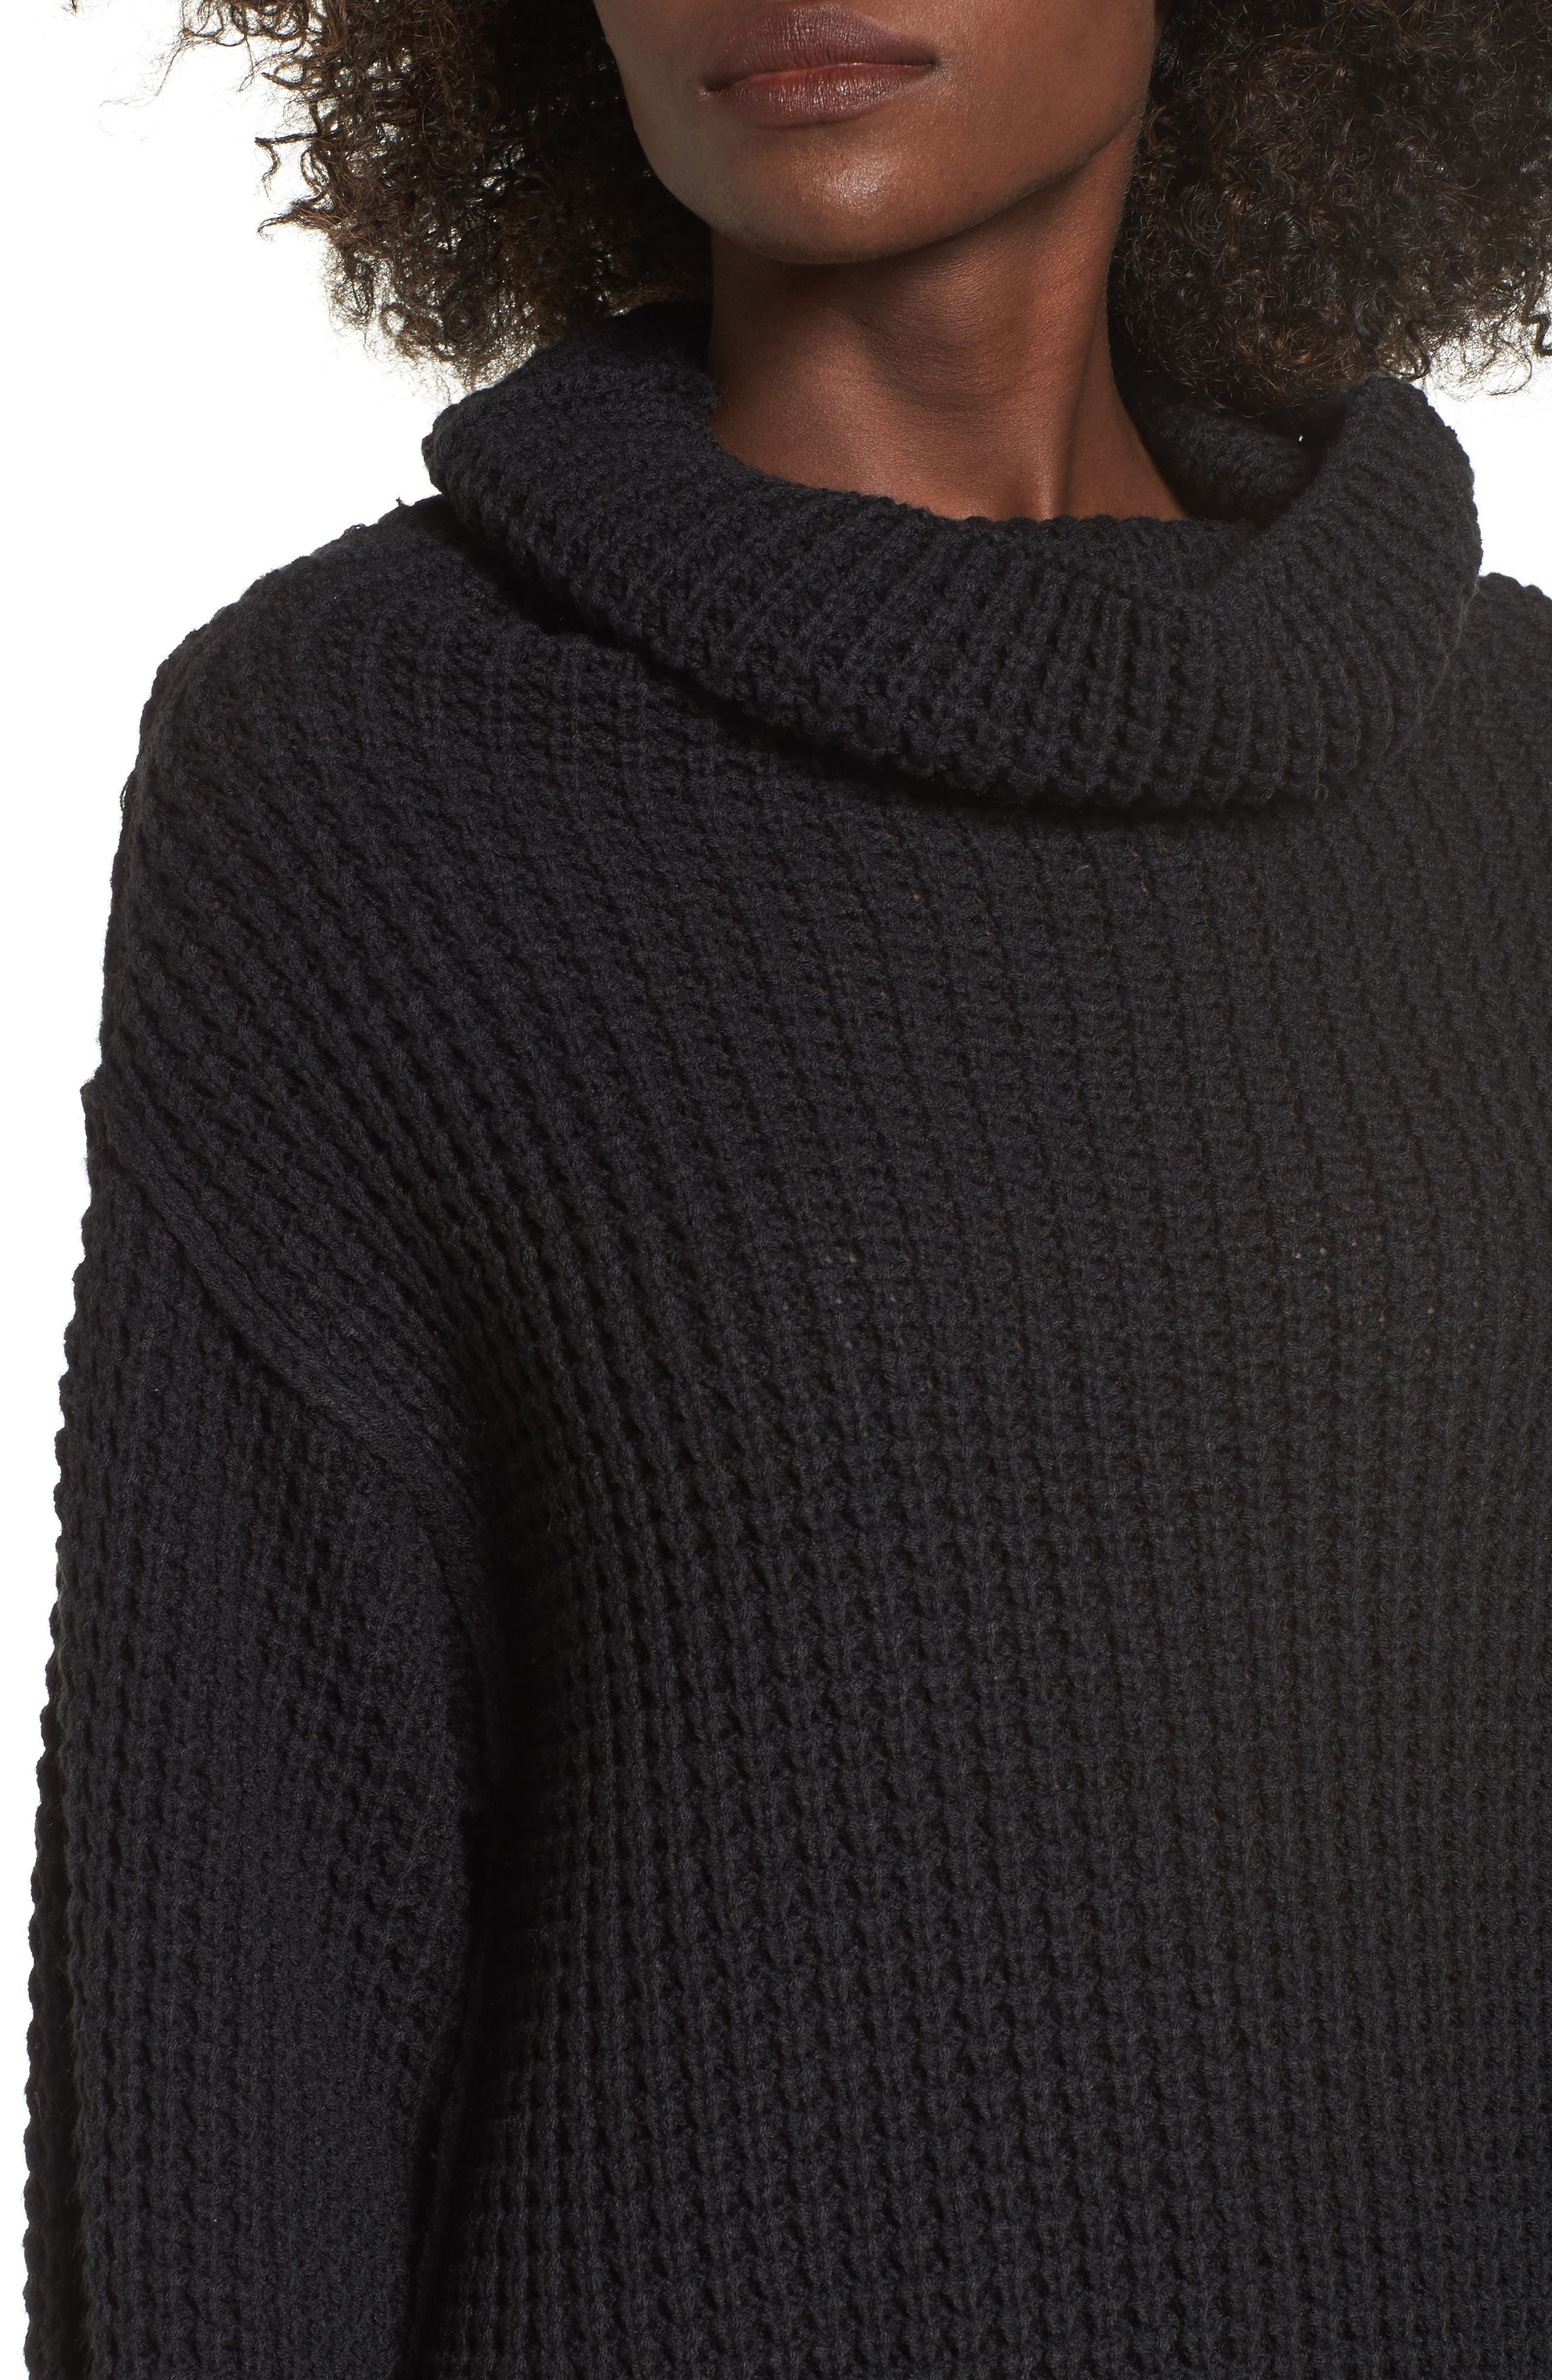 Cowl Neck Thermal Stitch Sweater,                             Alternate thumbnail 4, color,                             001